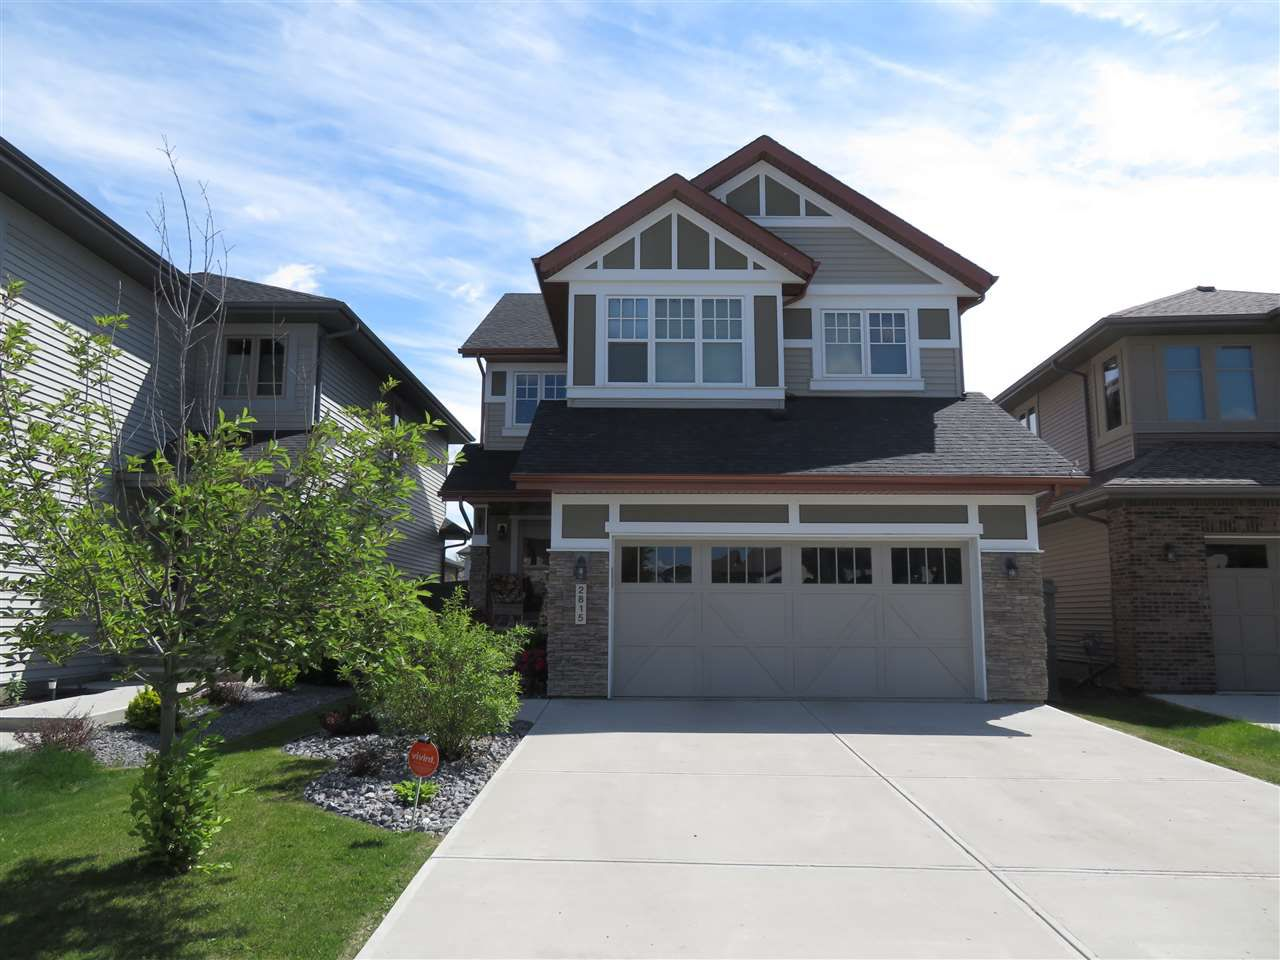 Main Photo: 2815 ANDERSON Place in Edmonton: Zone 56 House for sale : MLS®# E4157576